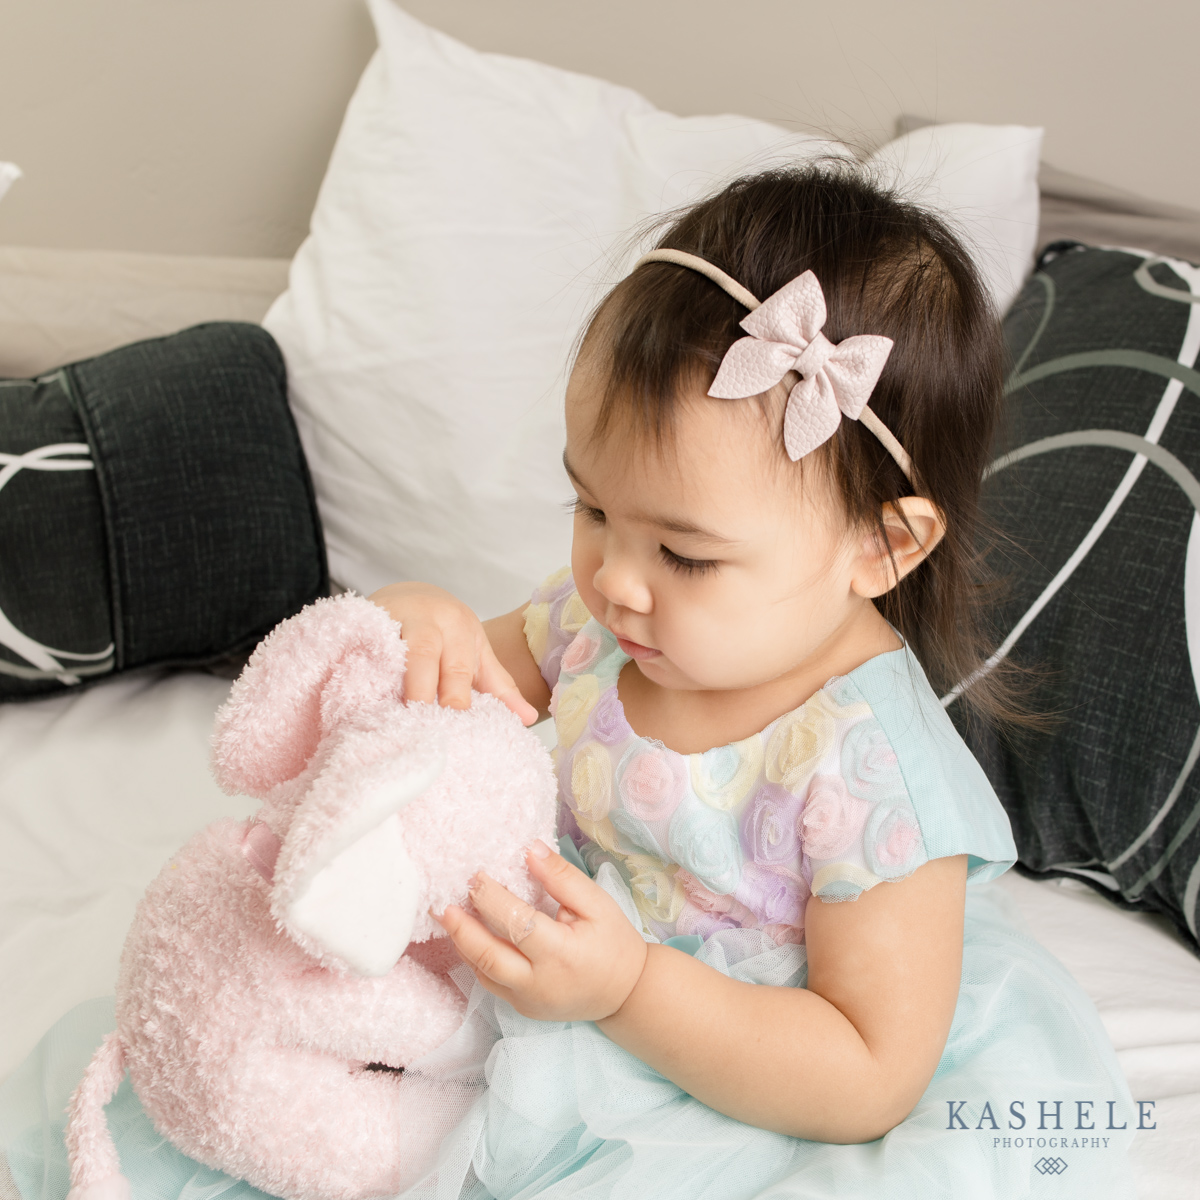 Little girl playing with an elephant stuffed animal